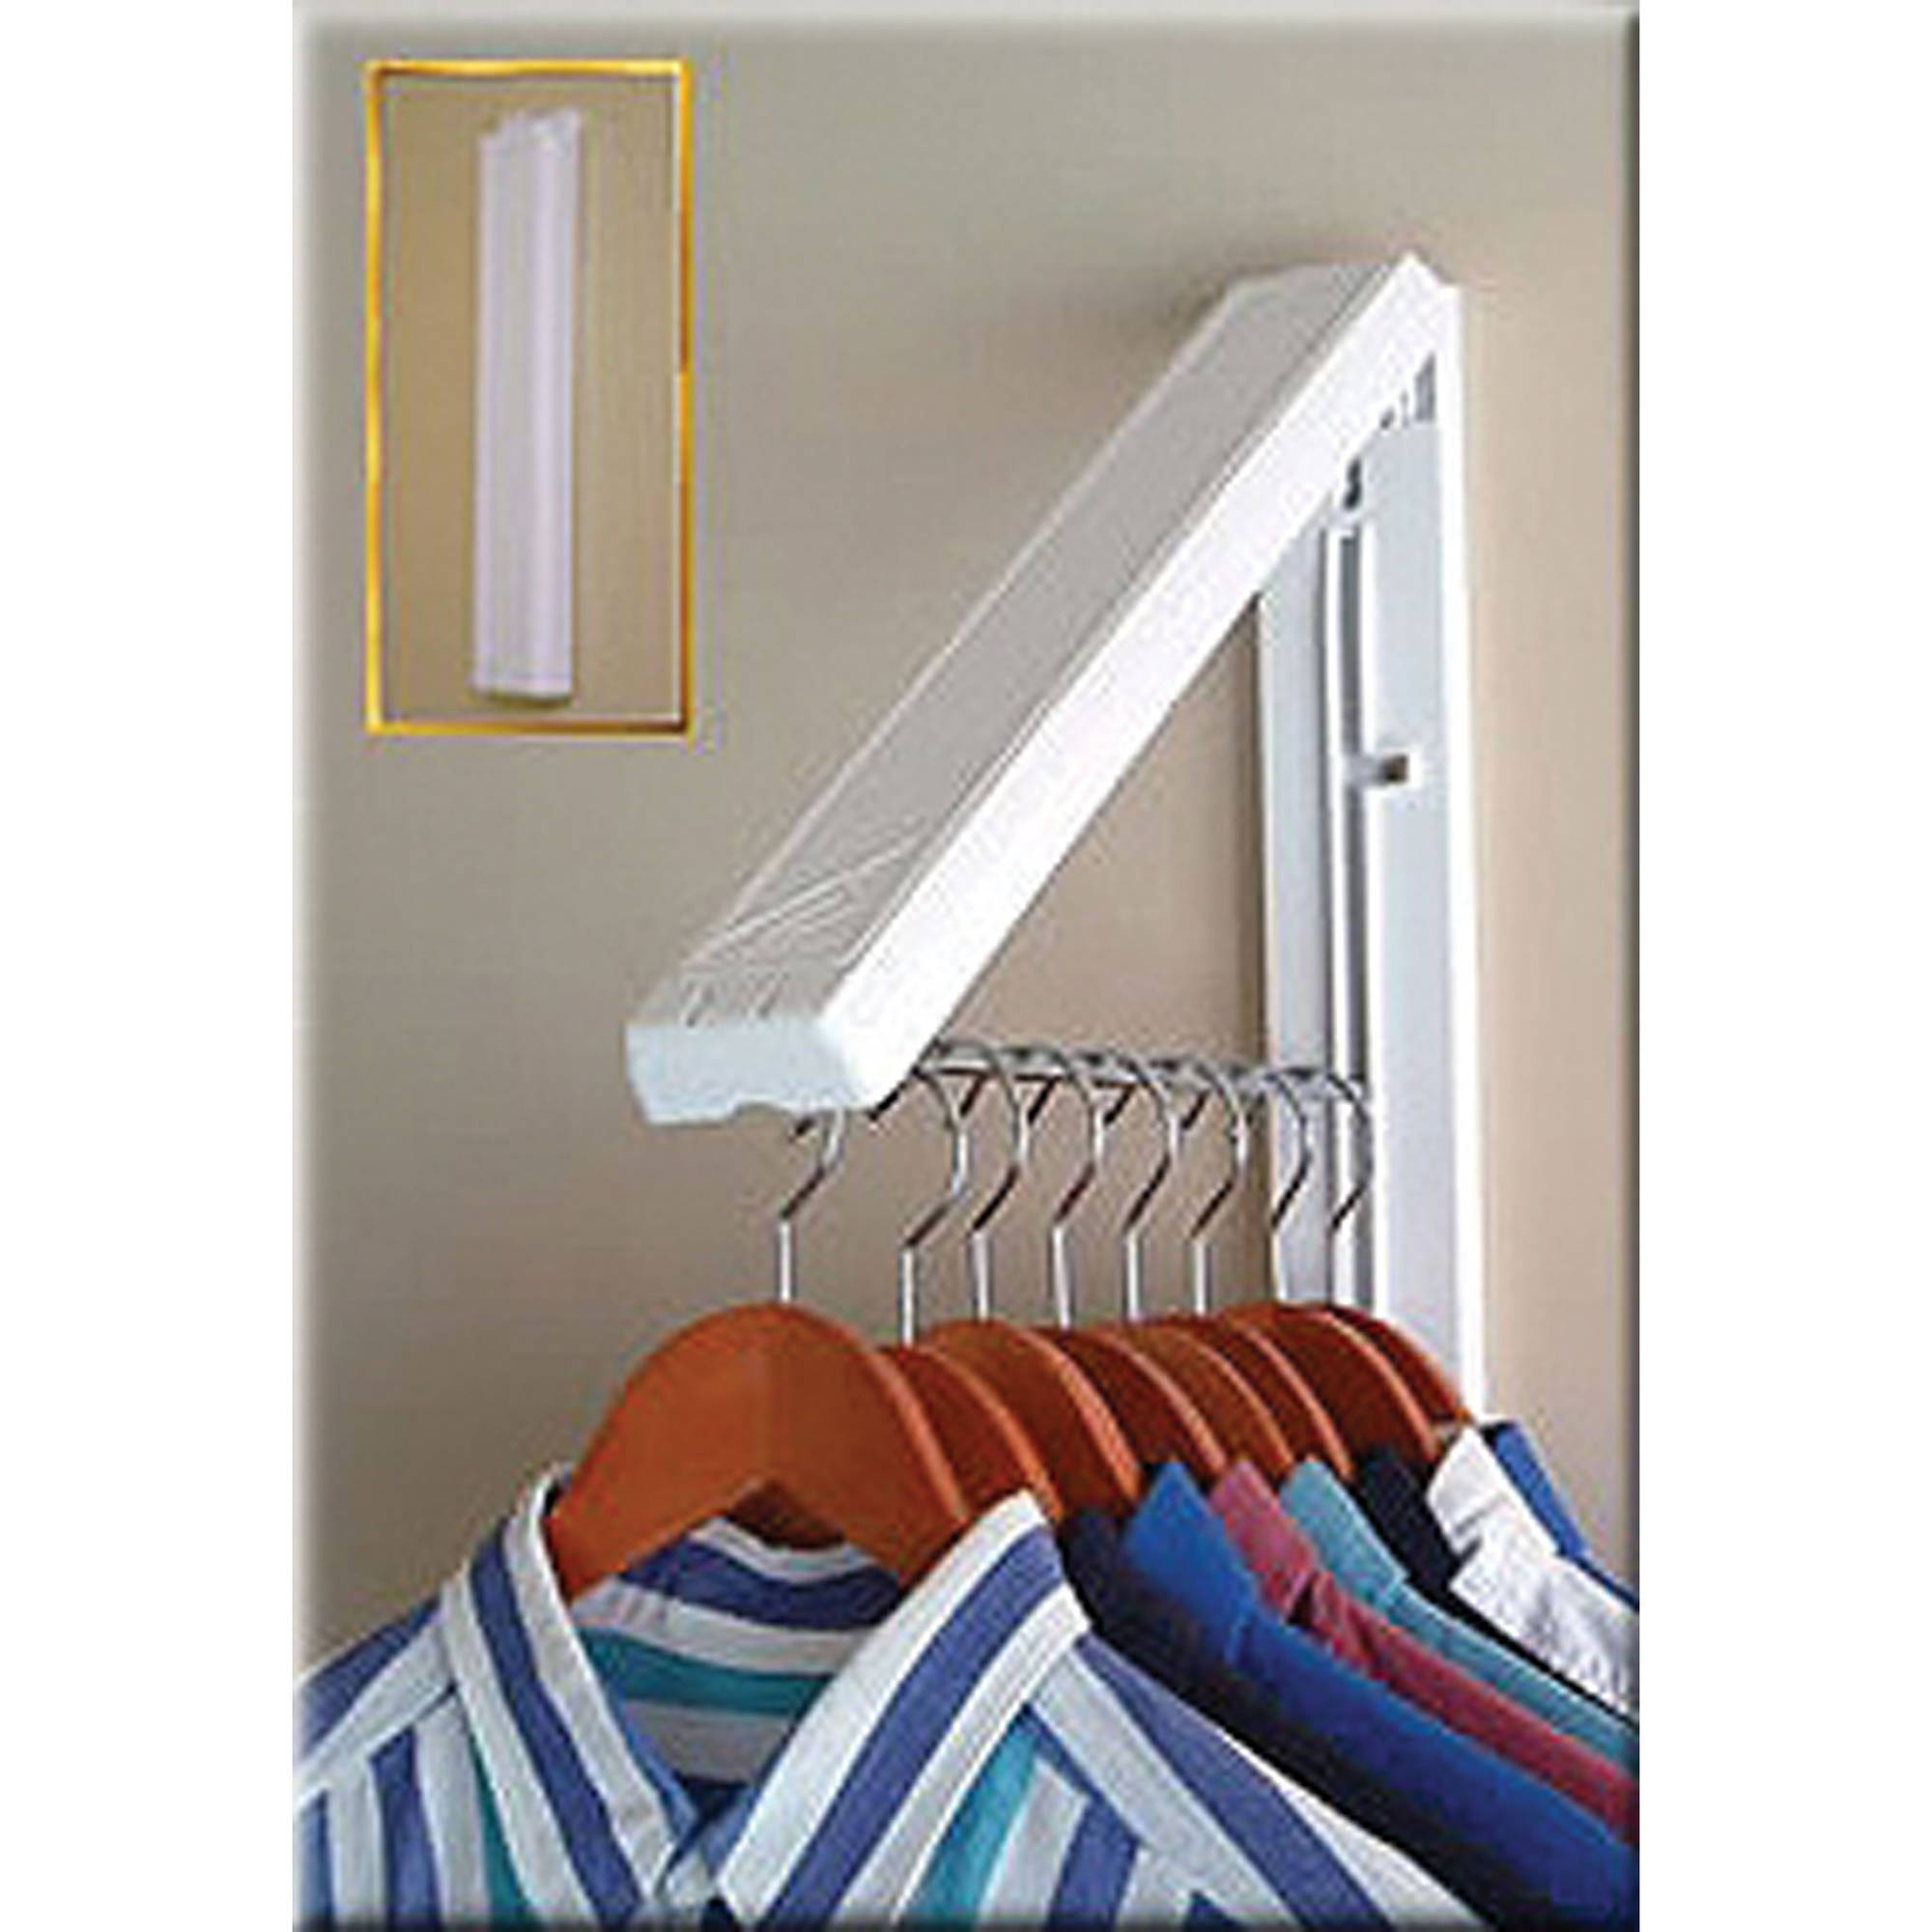 InstaHANGER Clothes Hanging System, White